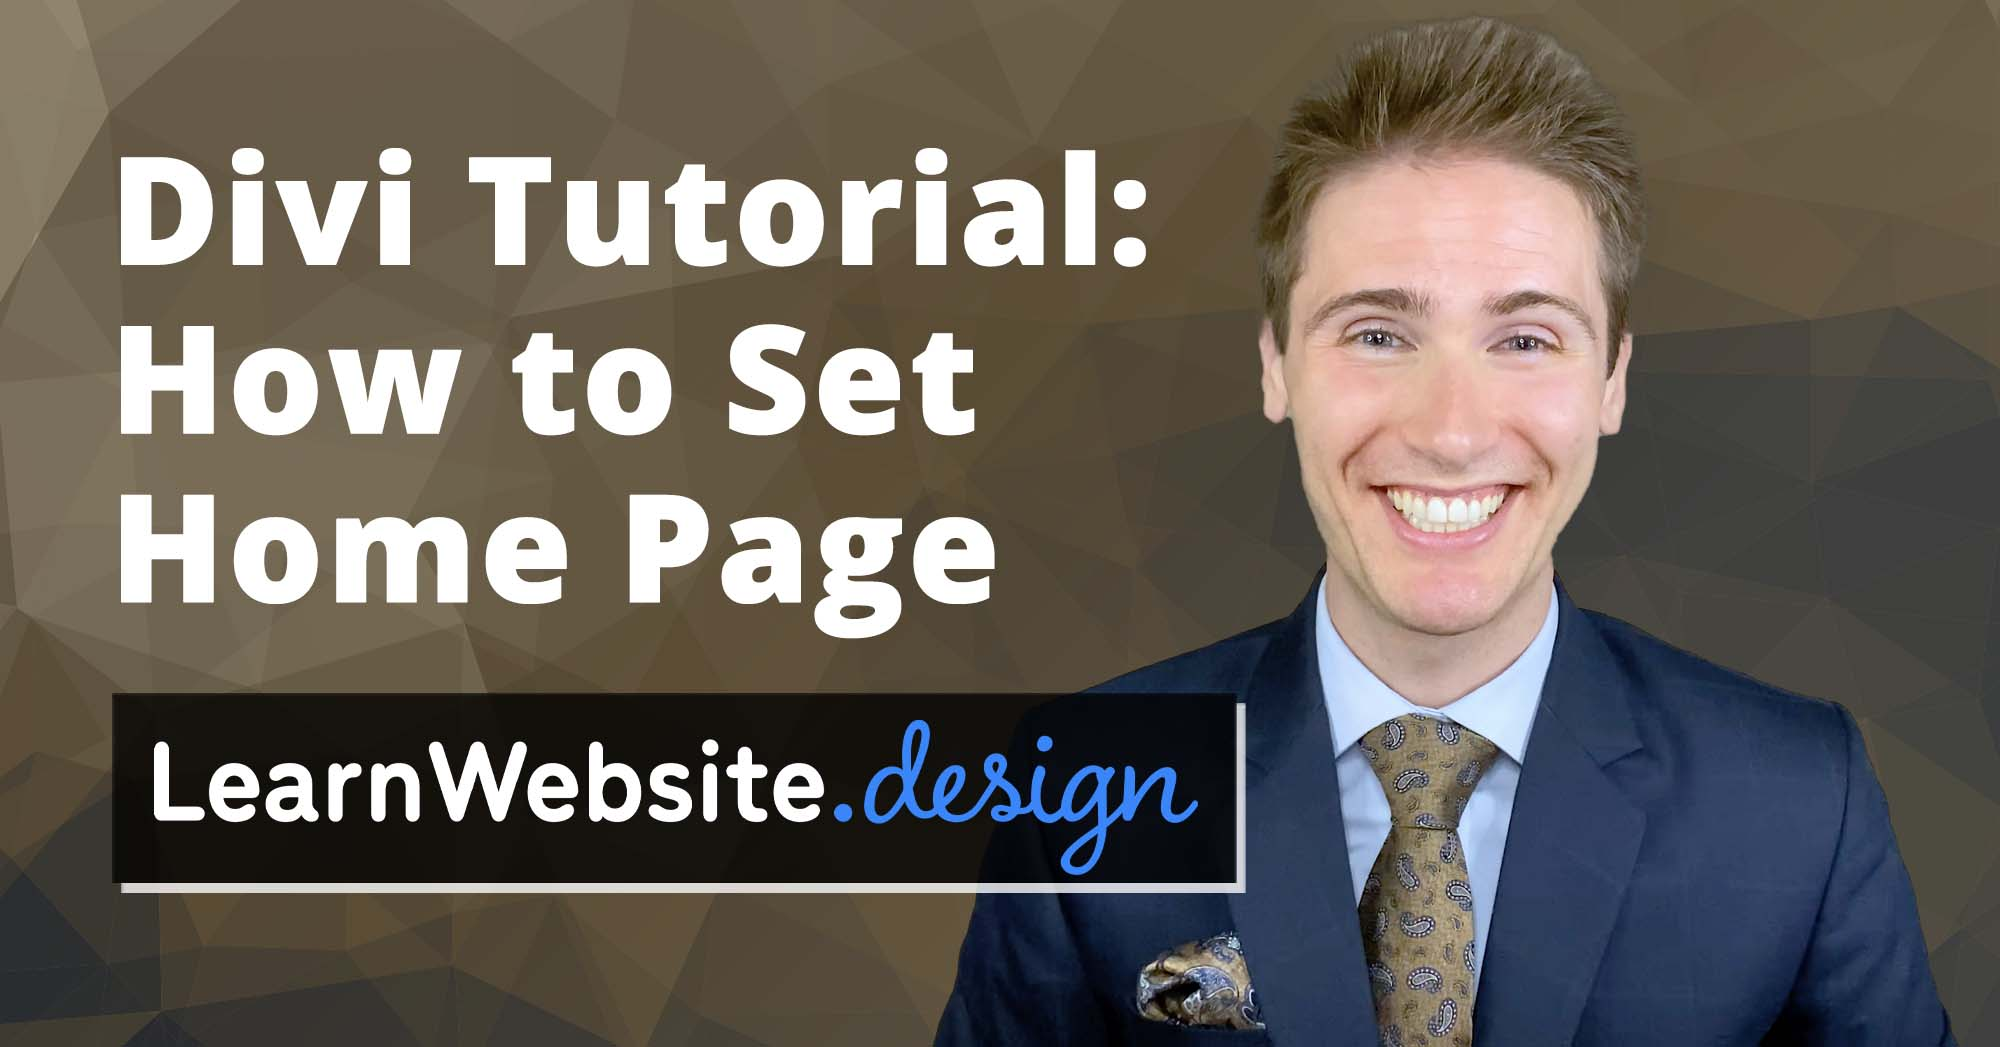 Divi How to Set Home Page Tutorial